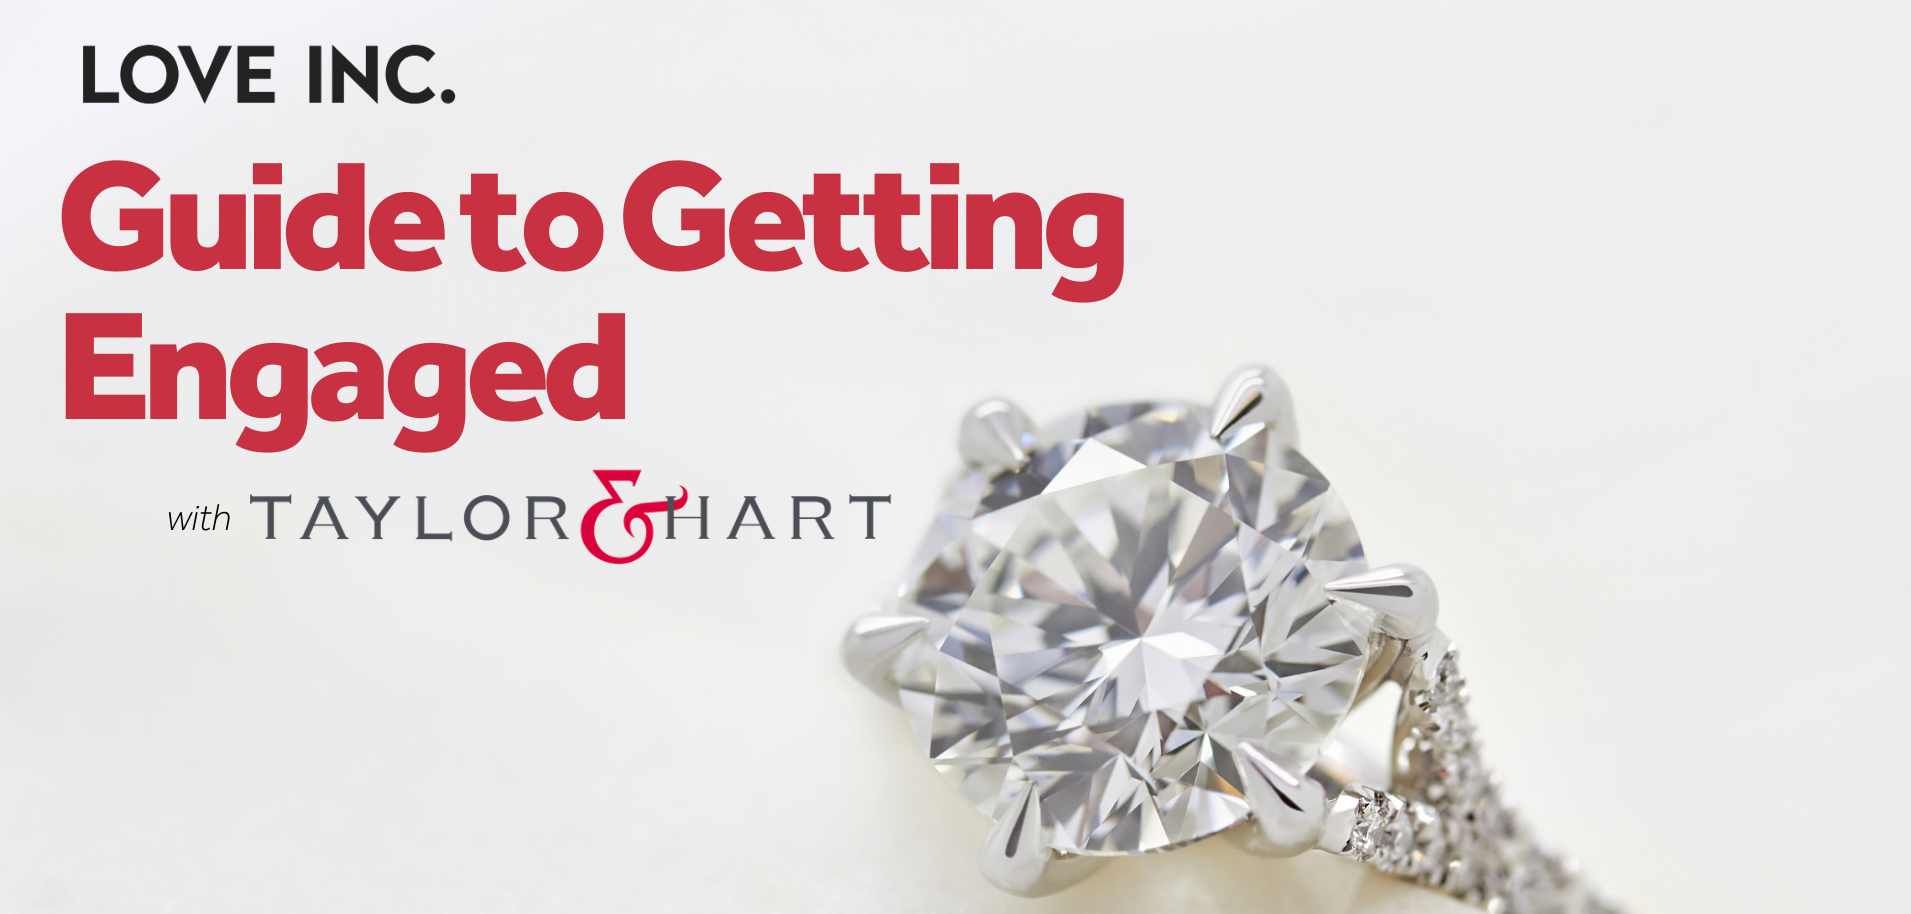 Guide to Getting Engaged